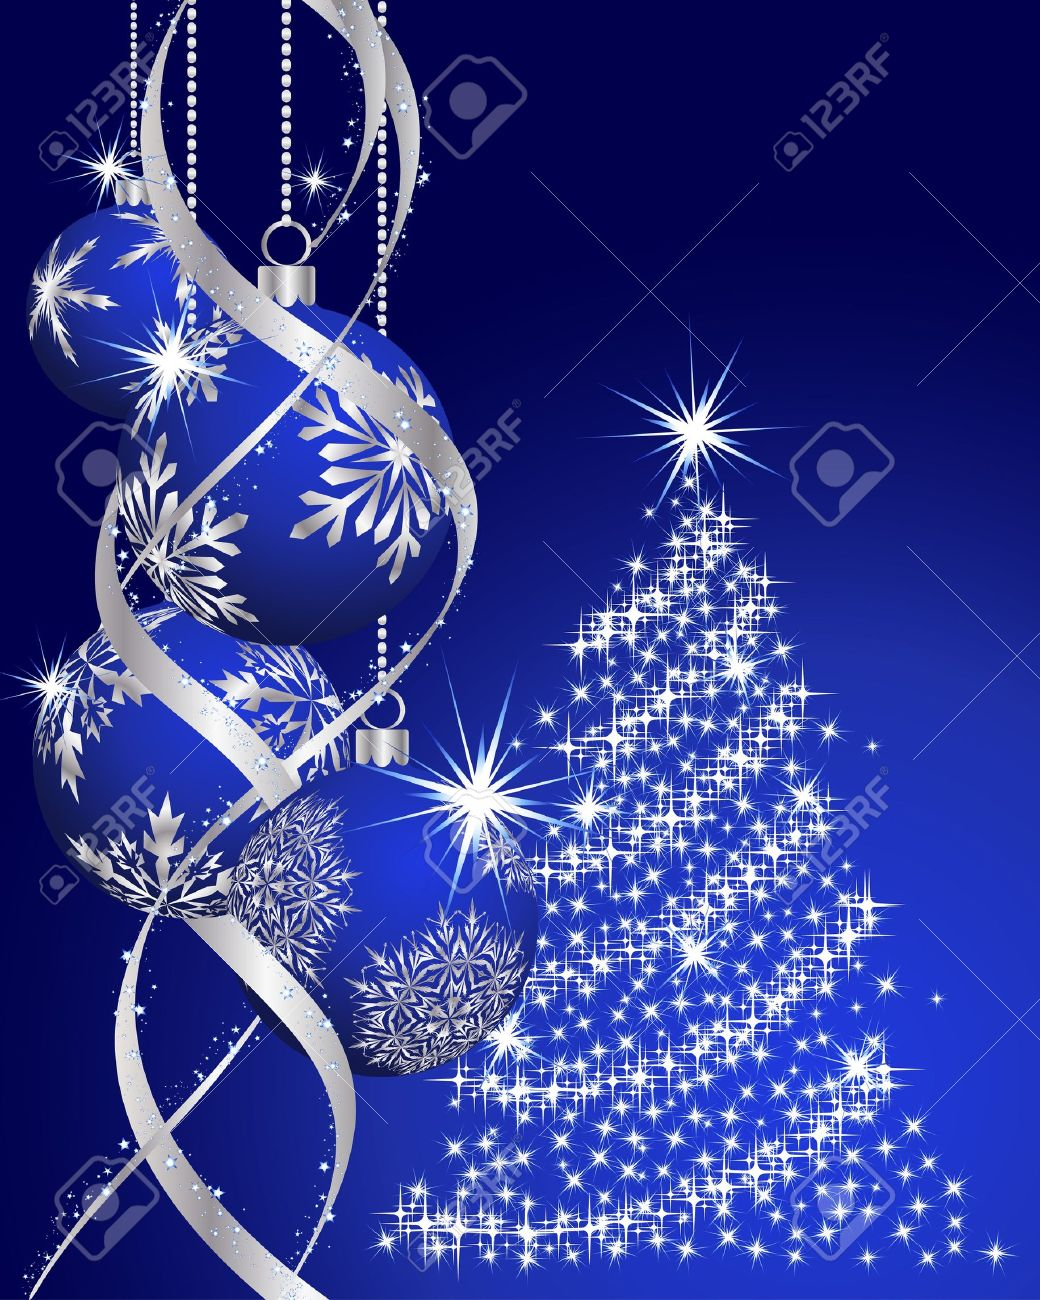 Beautiful vector christmas new year background for design use - Beautiful Christmas New Year Background For Design Use Stock Vector 7561749